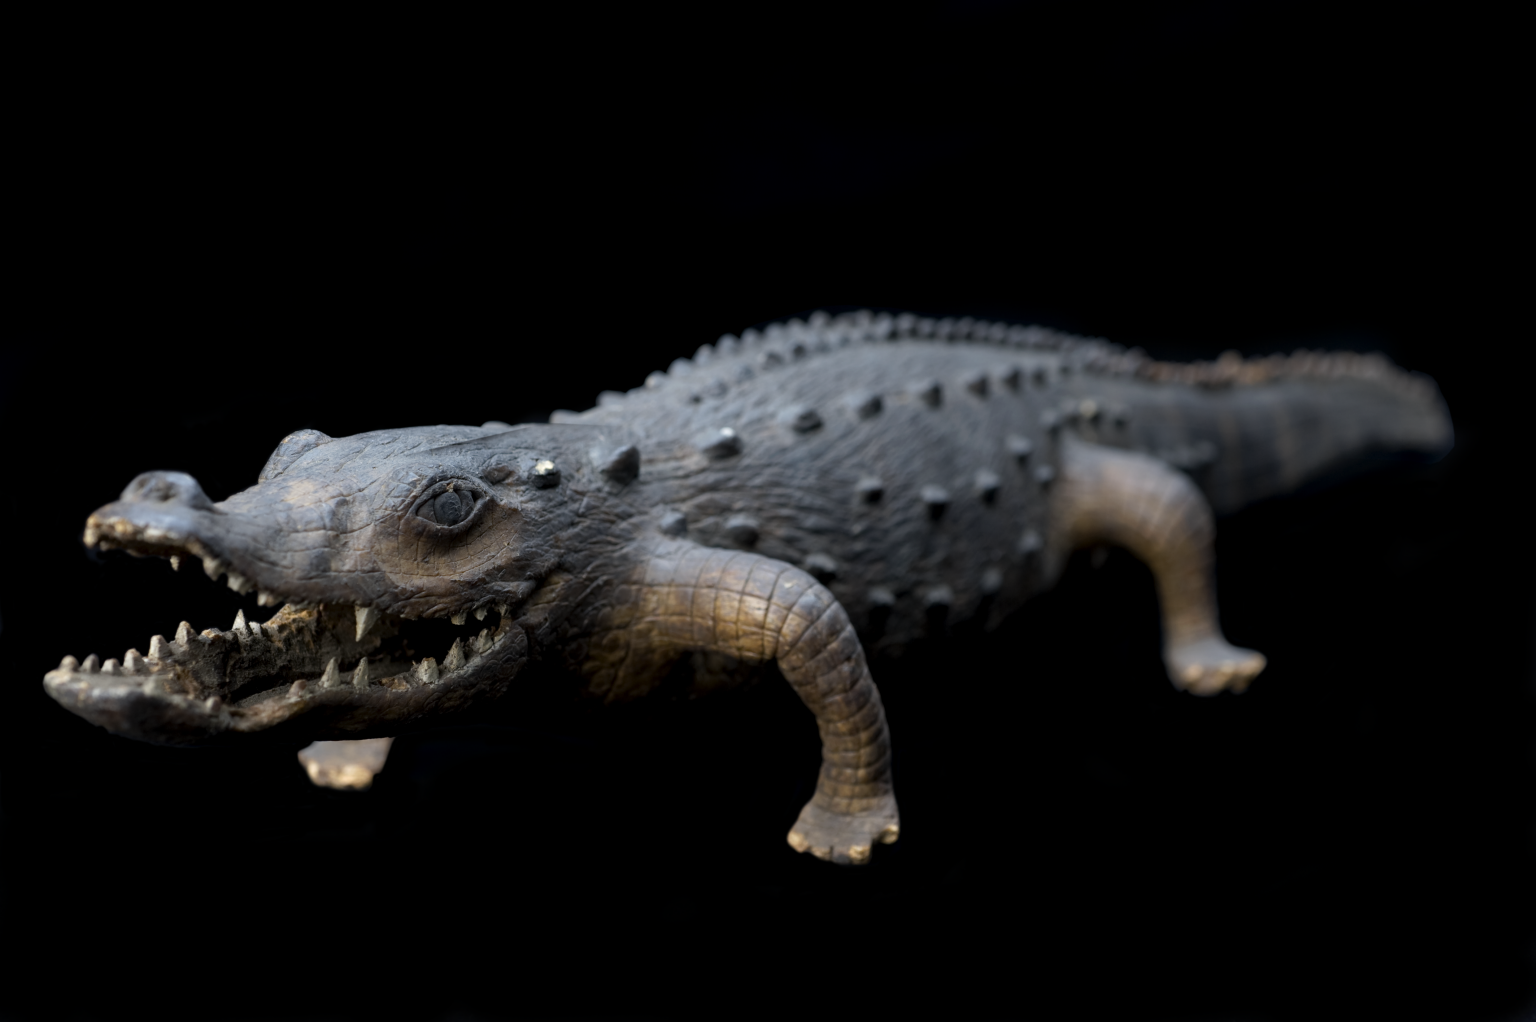 Model alligator, England, 1801-1900